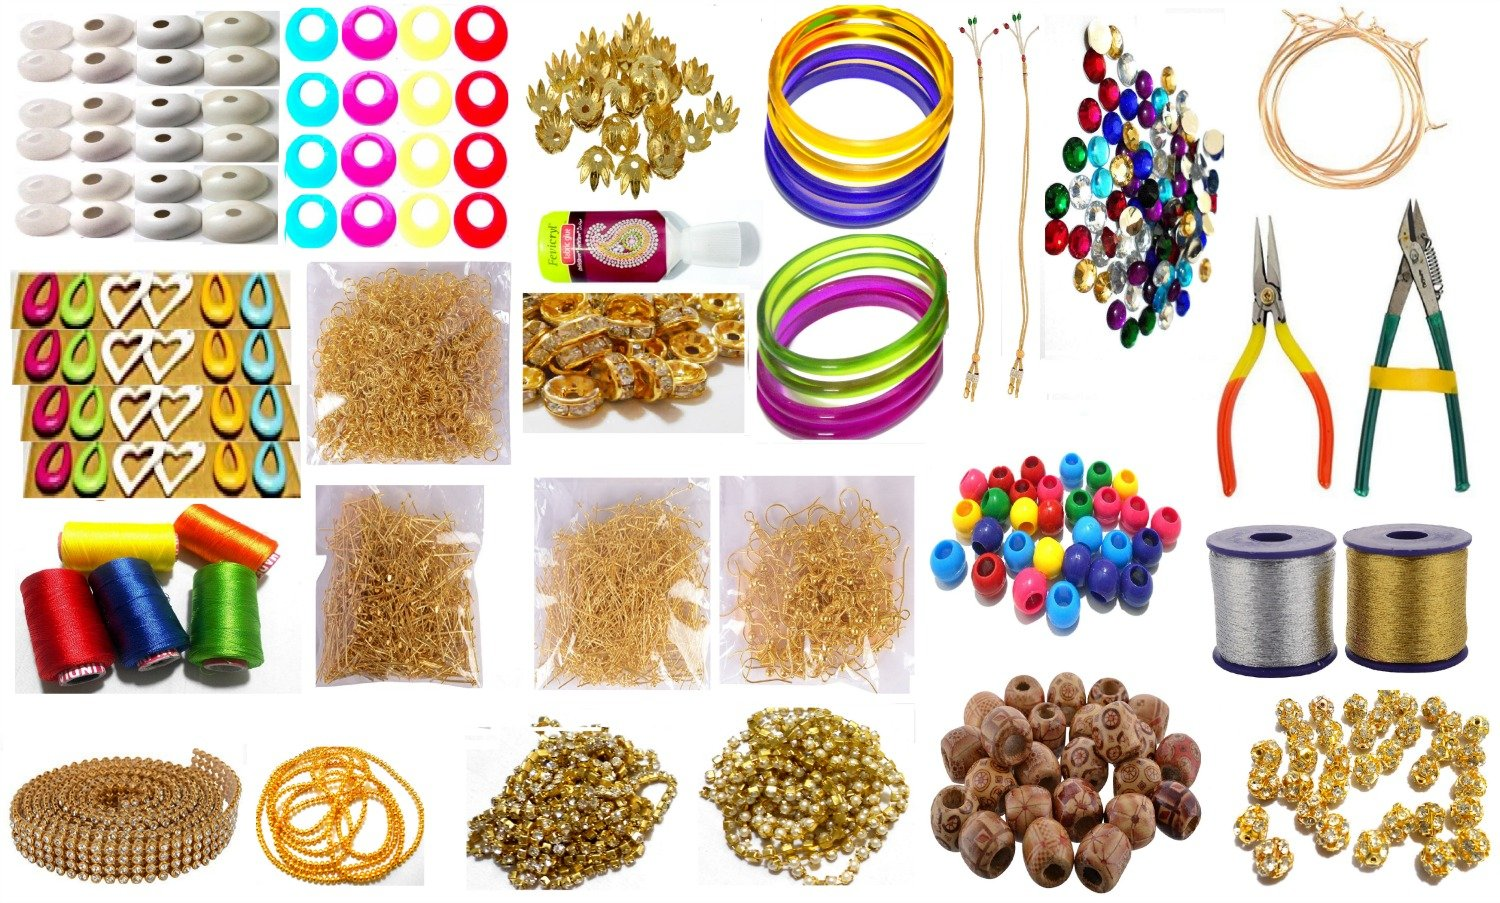 Goelx Silk Thread Jewellery Making Kit - 50 Pairs Jhumka Earring Base With Bali Ring, Jewellery Making Materials - 26 Items